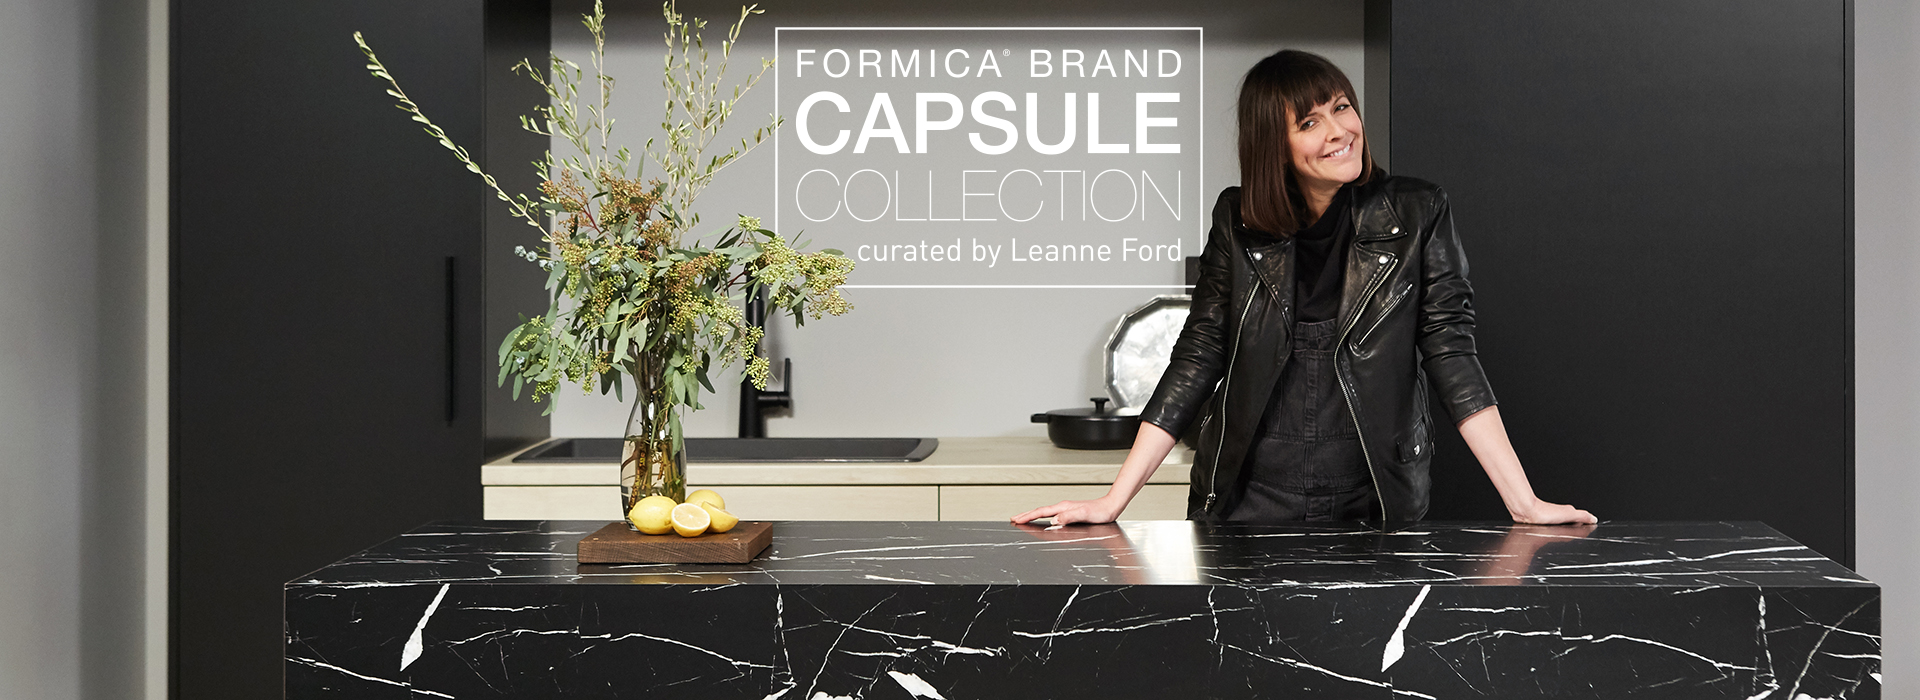 Formica® Brand Capsule Collection